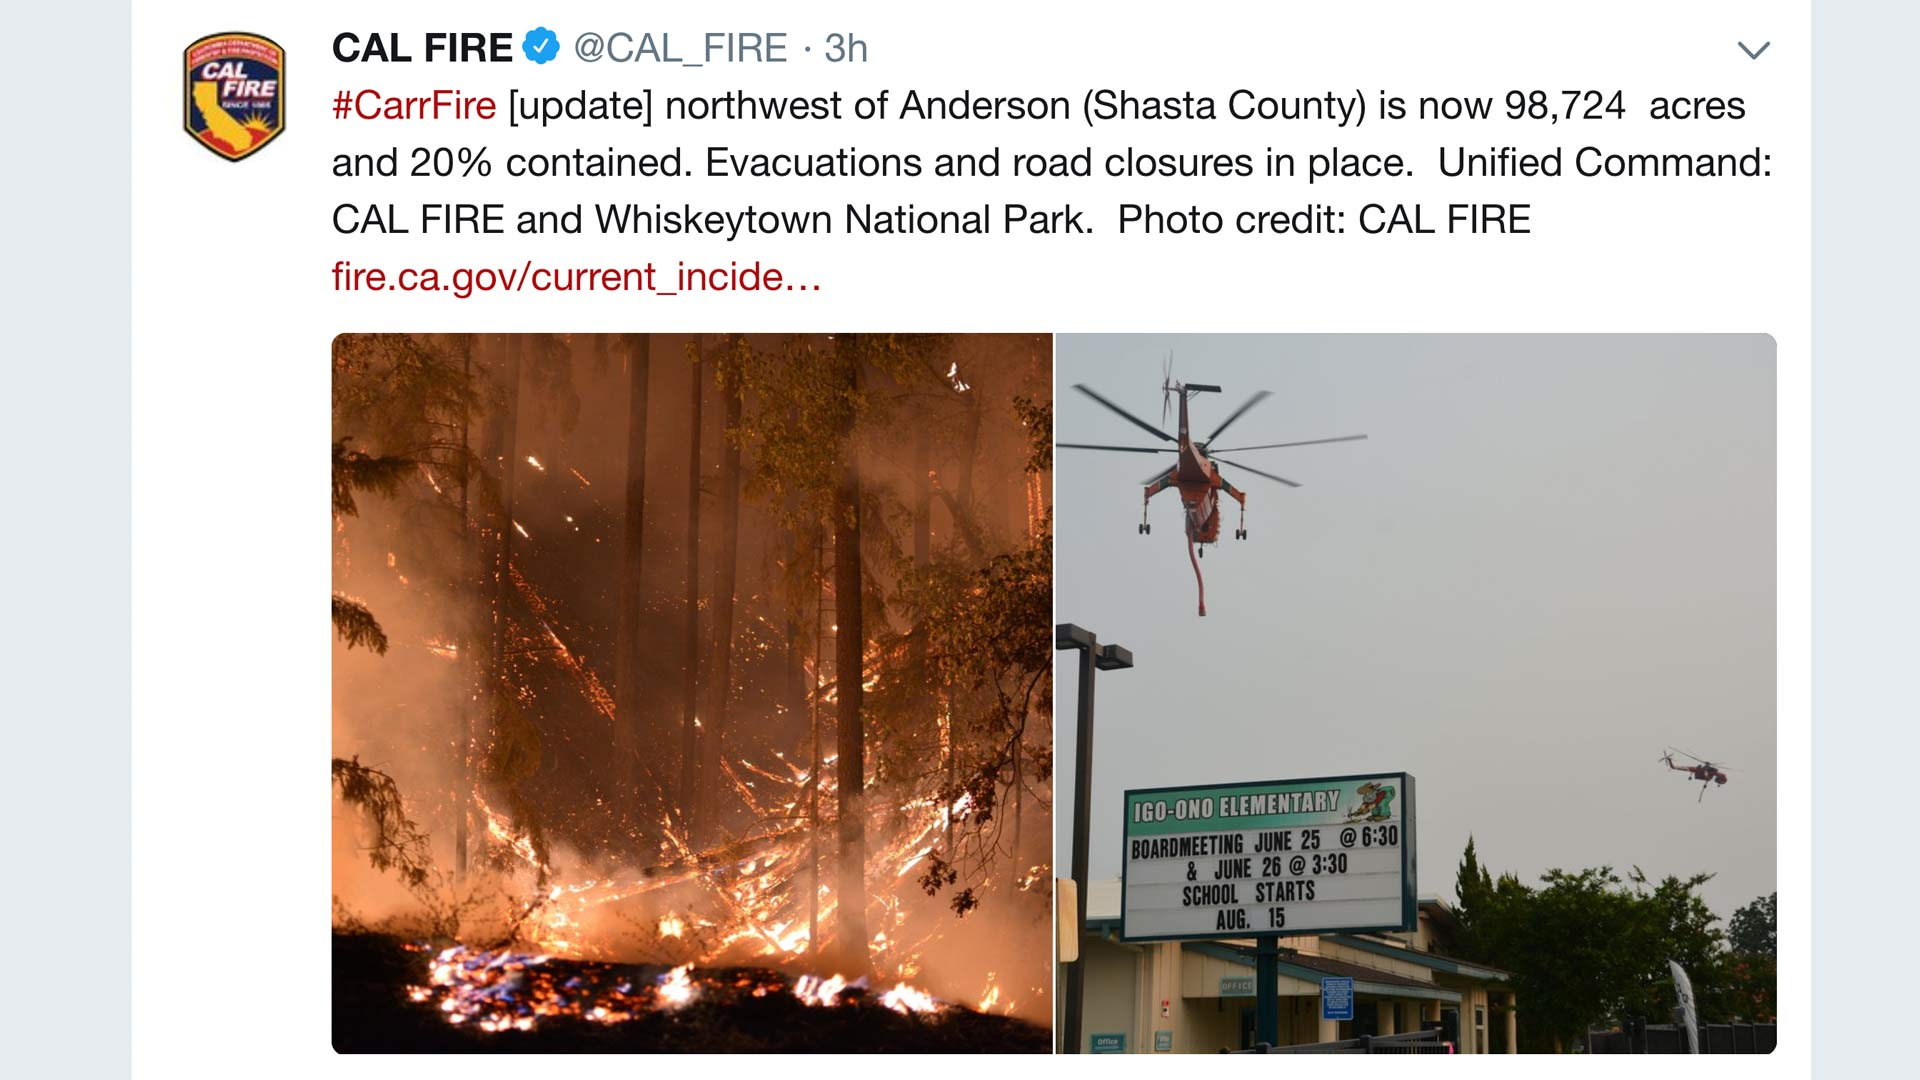 Image from the Twitter page of California Department of Forestry and Fire Protection regarding the deadly Carr Fire burning in Northern California. July 30, 2018.